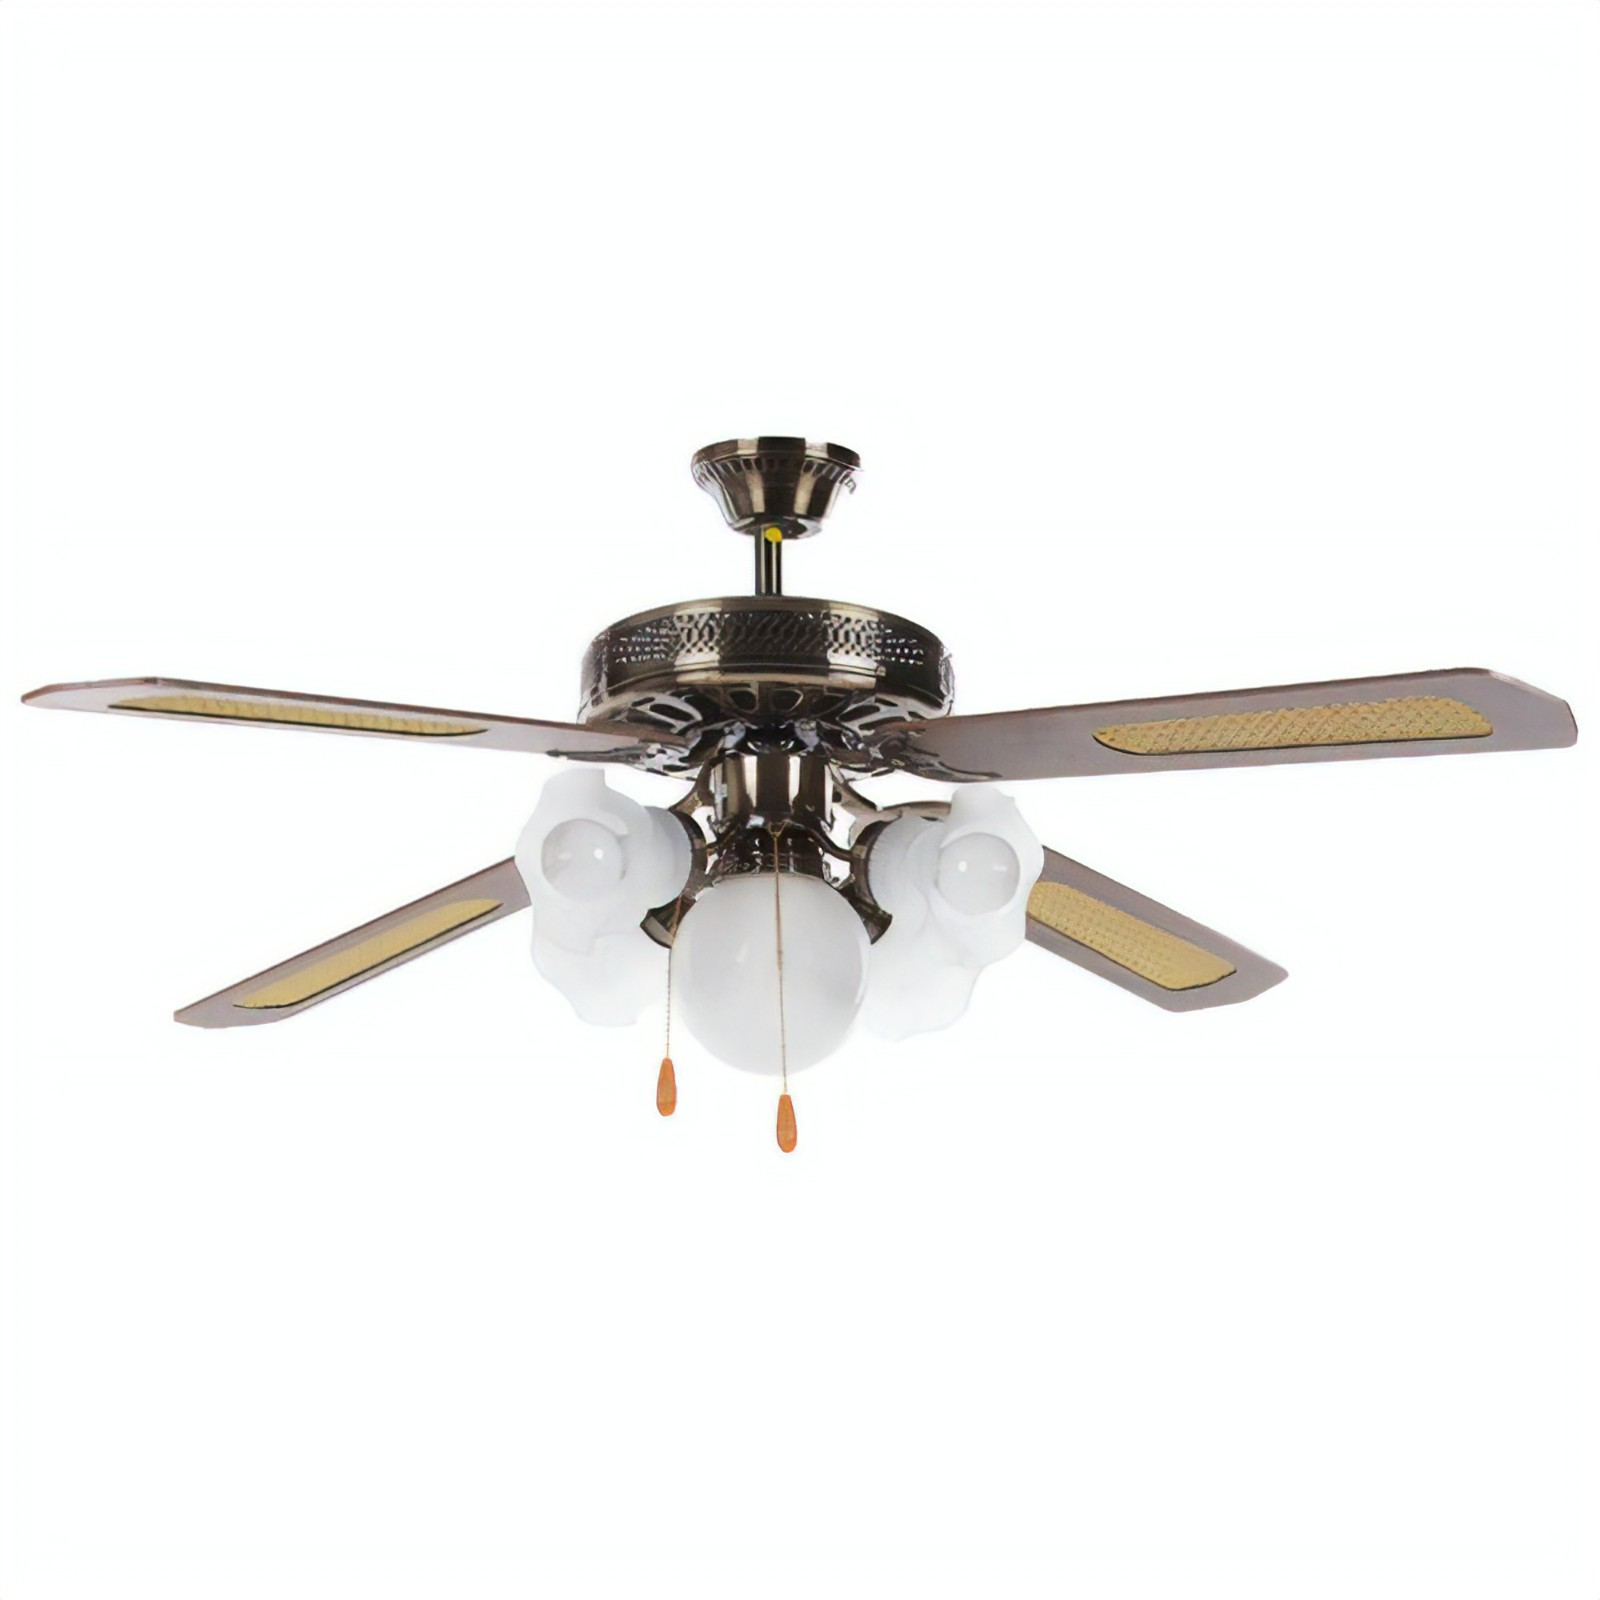 Filgifts Com American Heritage 52 Inch Ceiling Fan Antique Ahcf Econ By Send Appliance Gifts